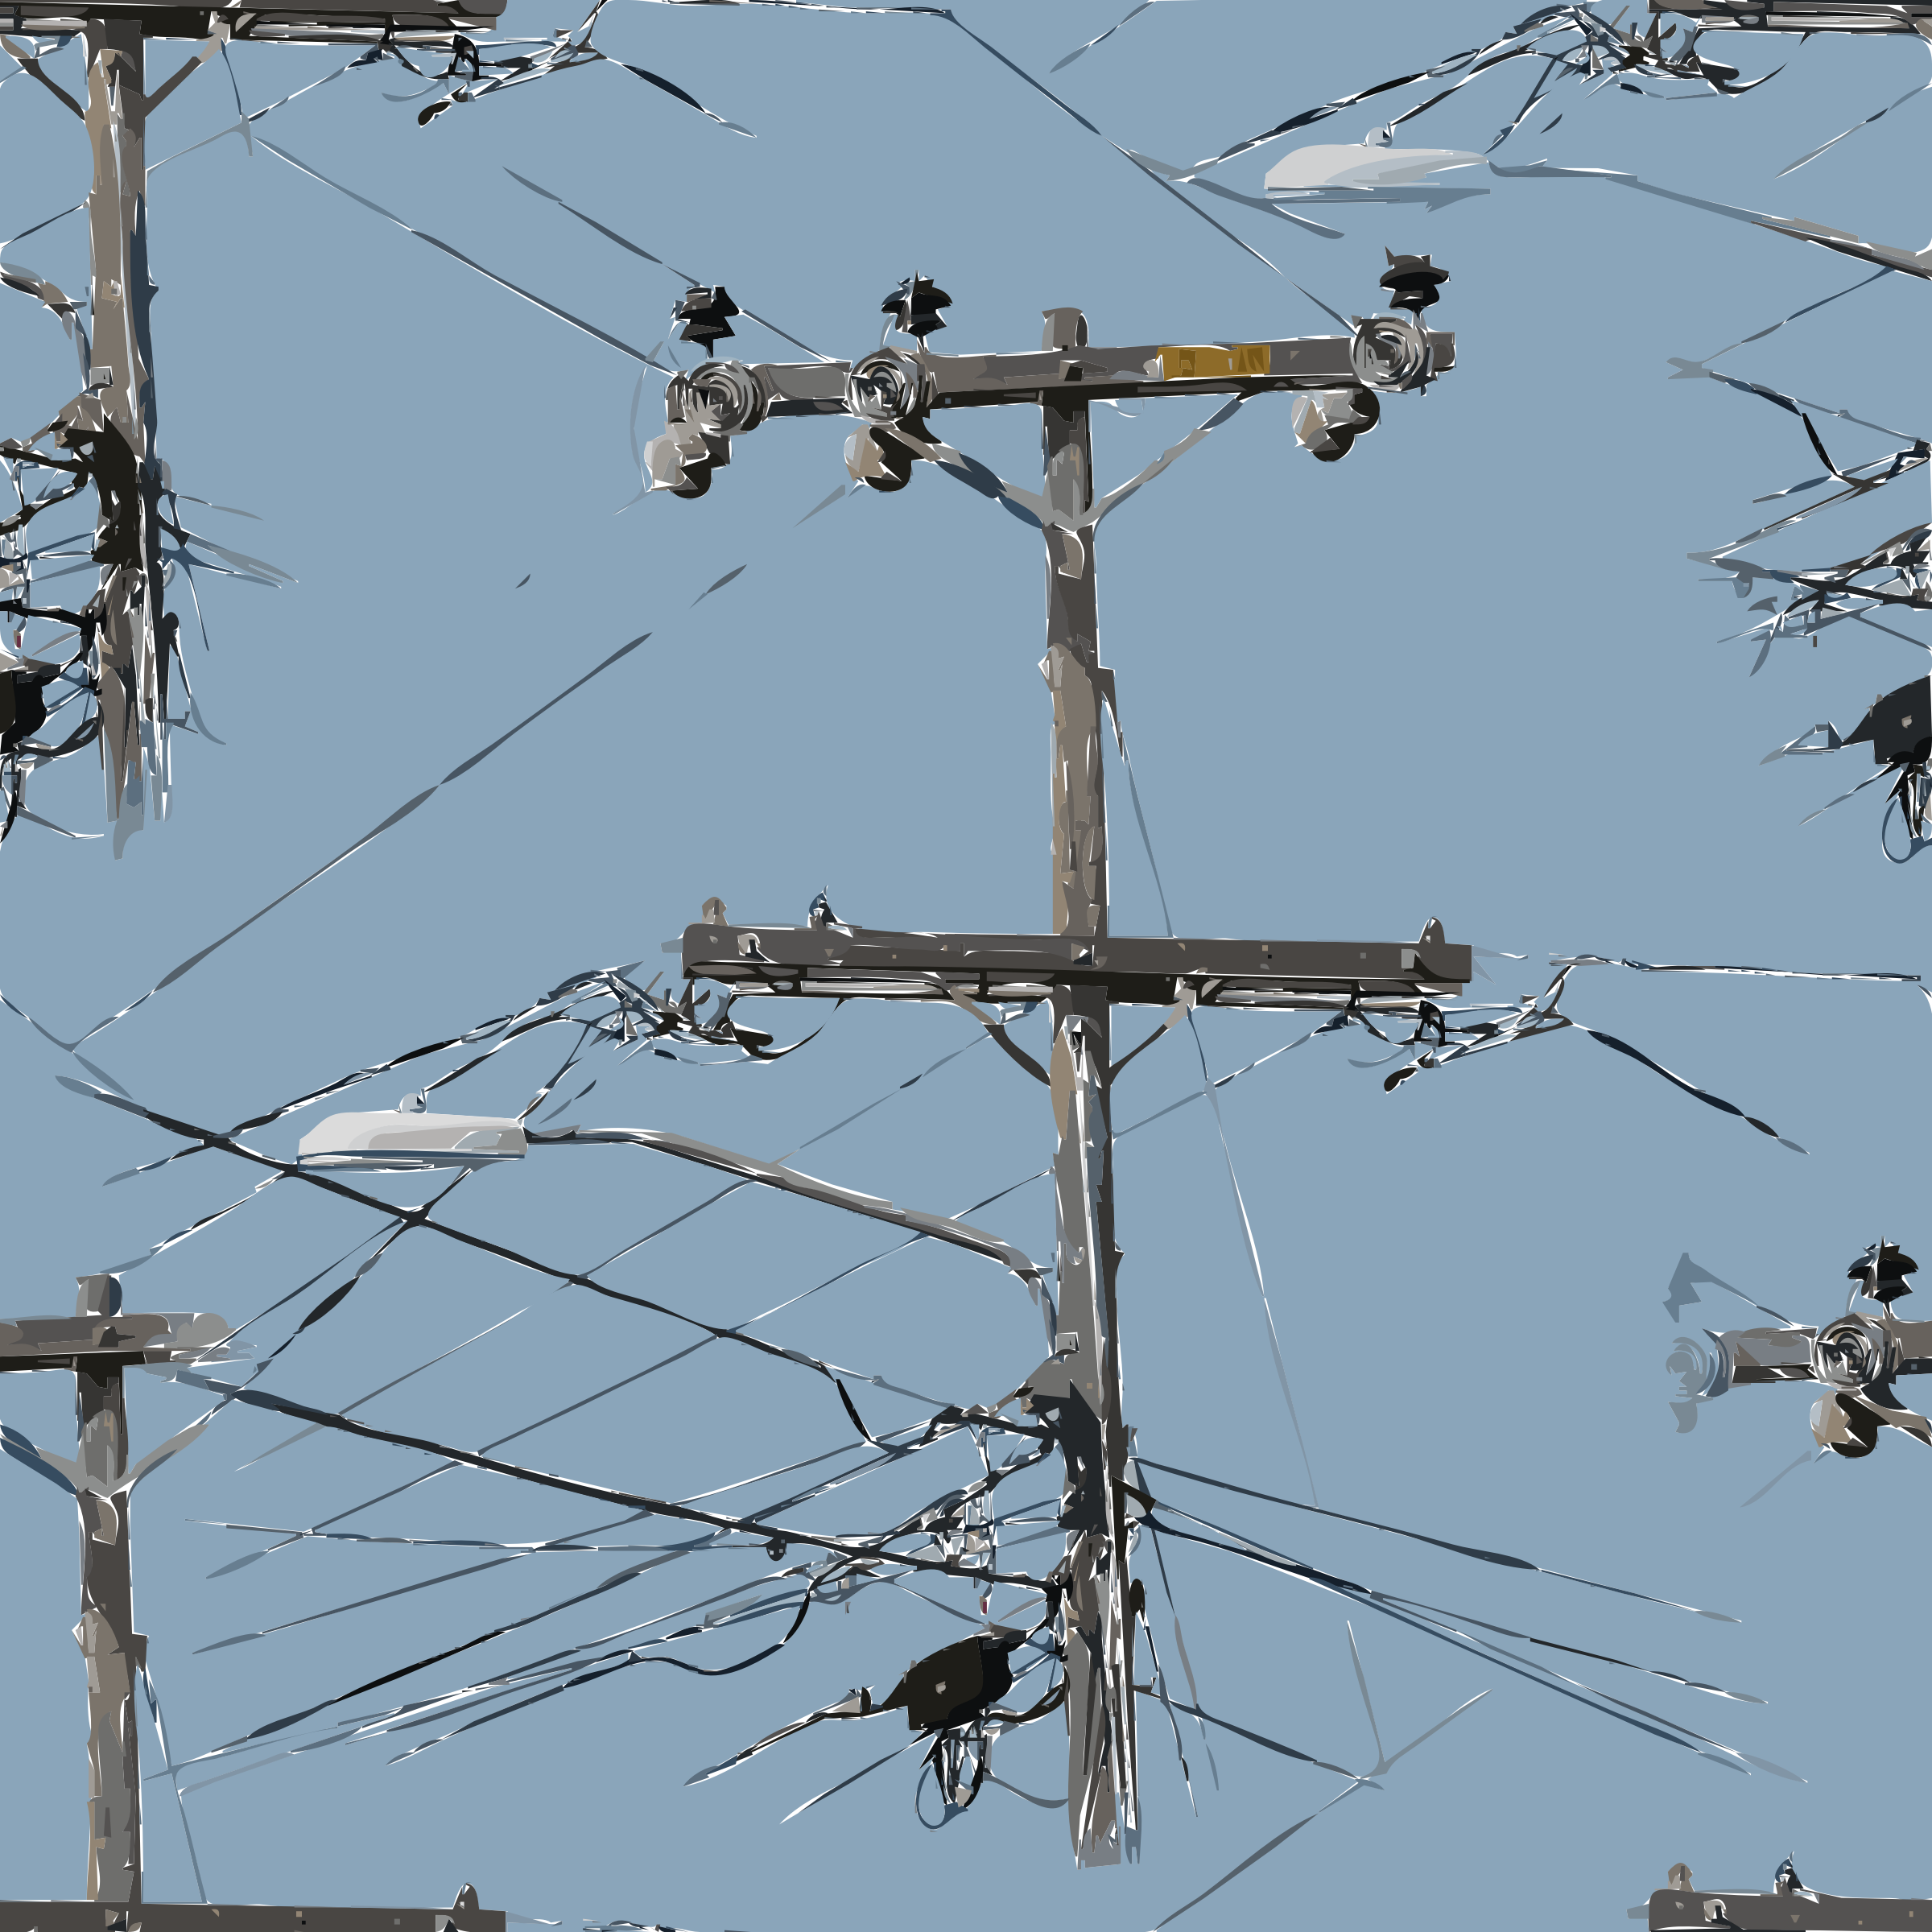 Electrical clipart utility. Power lines big image